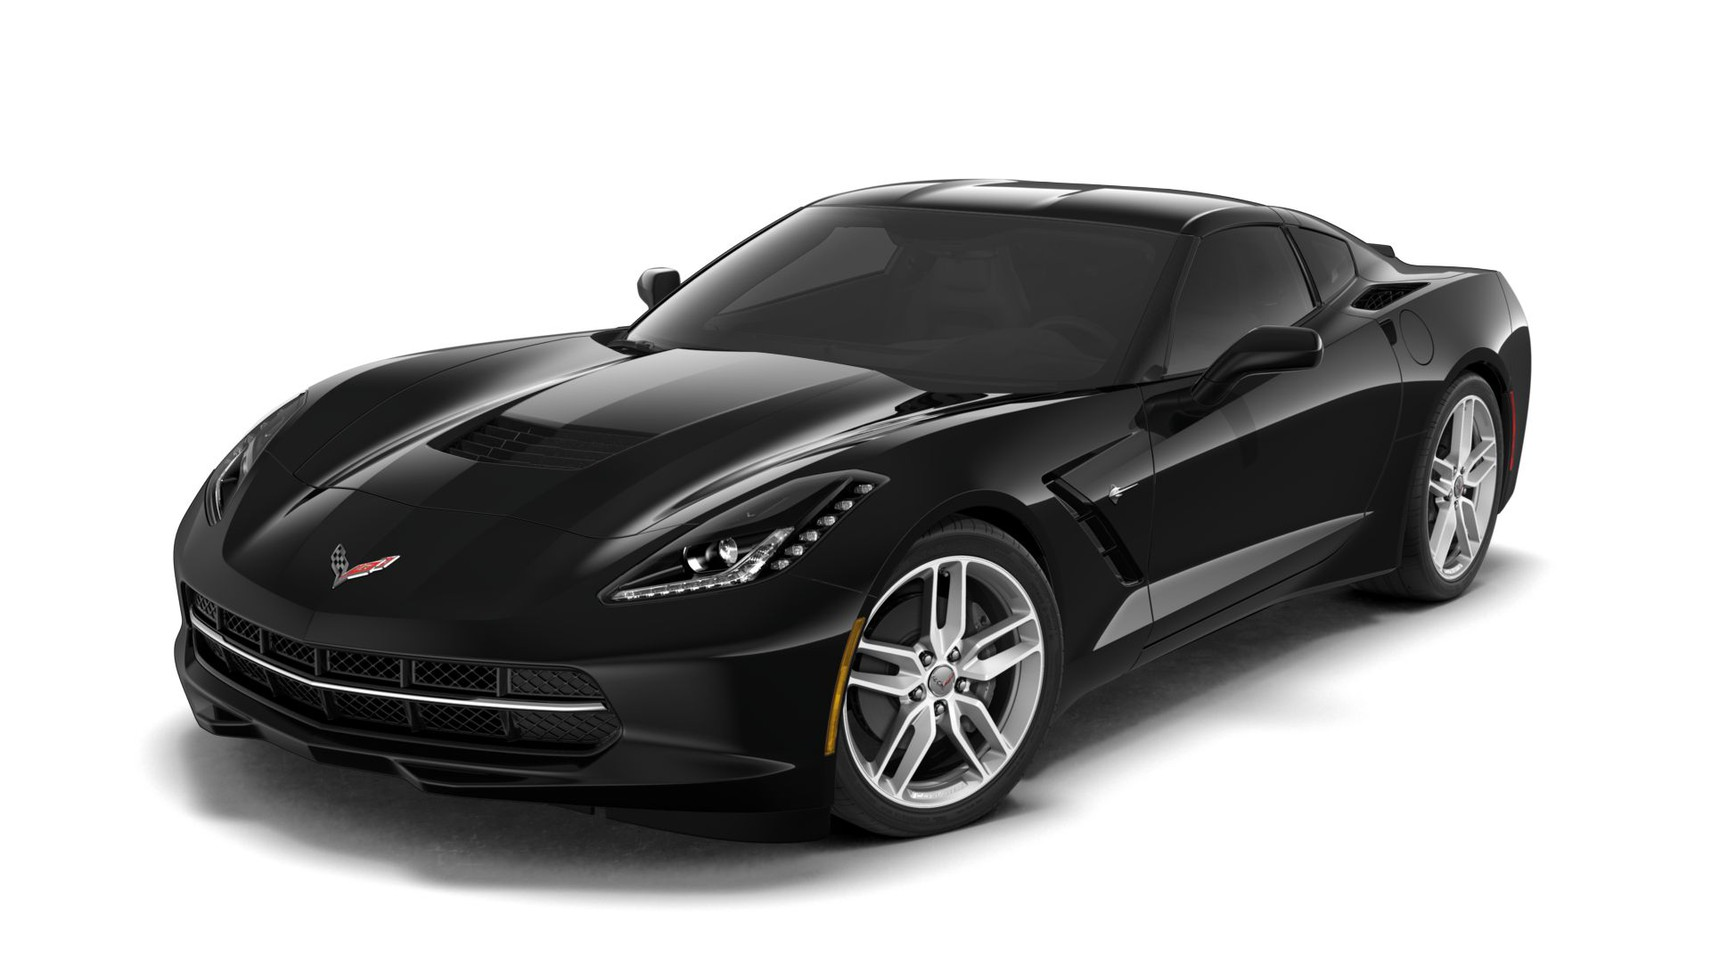 Chevrolet Corvette Stingray 2019 3LT Coupe